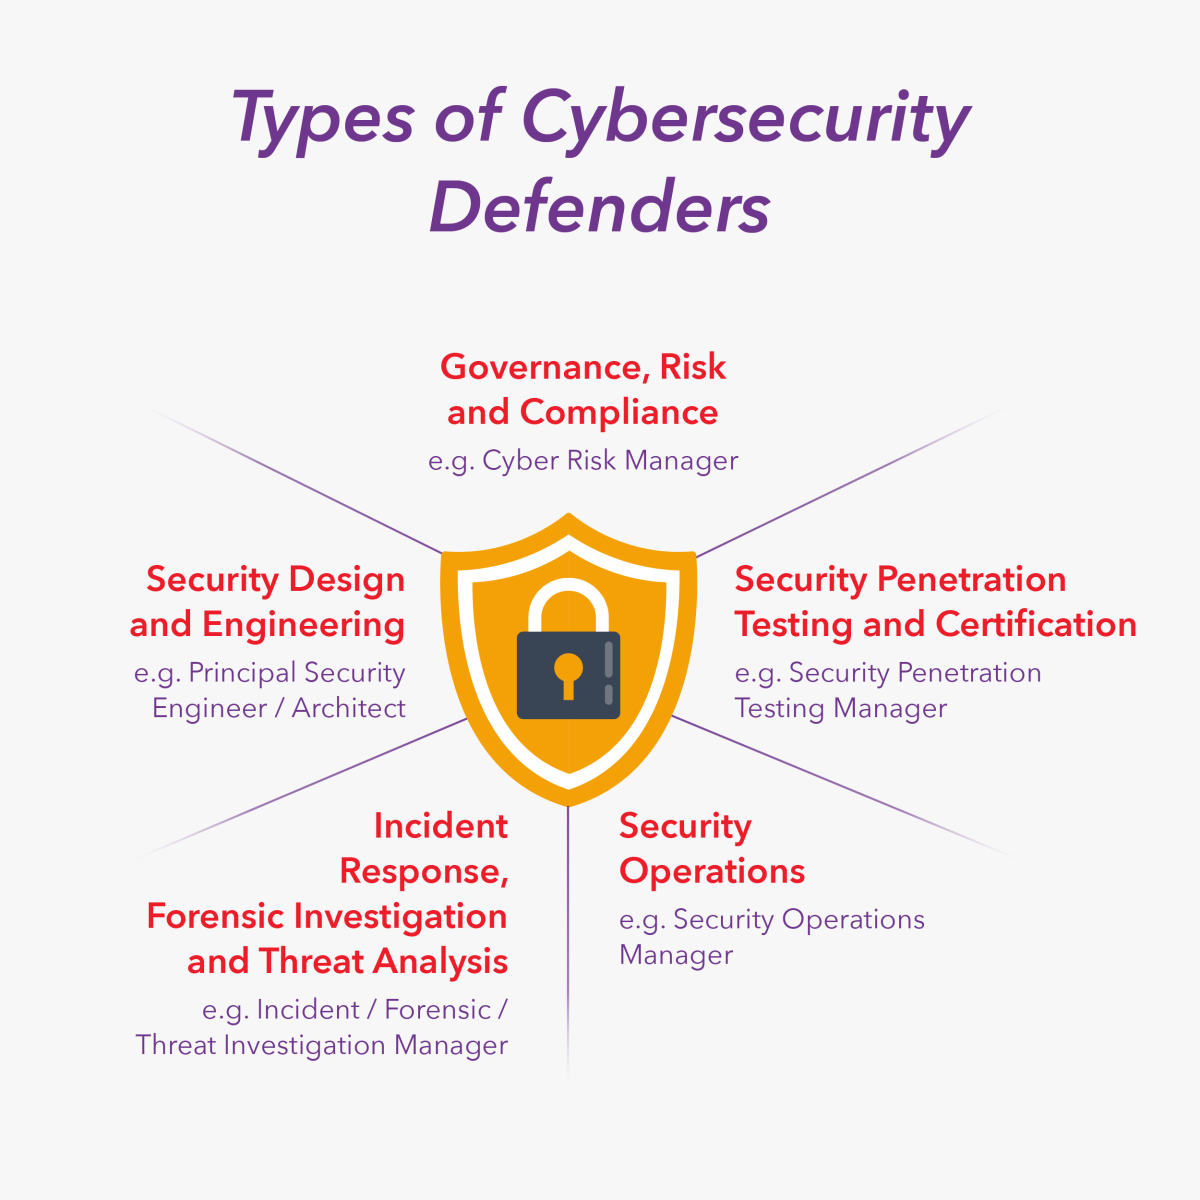 Types of Cybersecurity Defenders